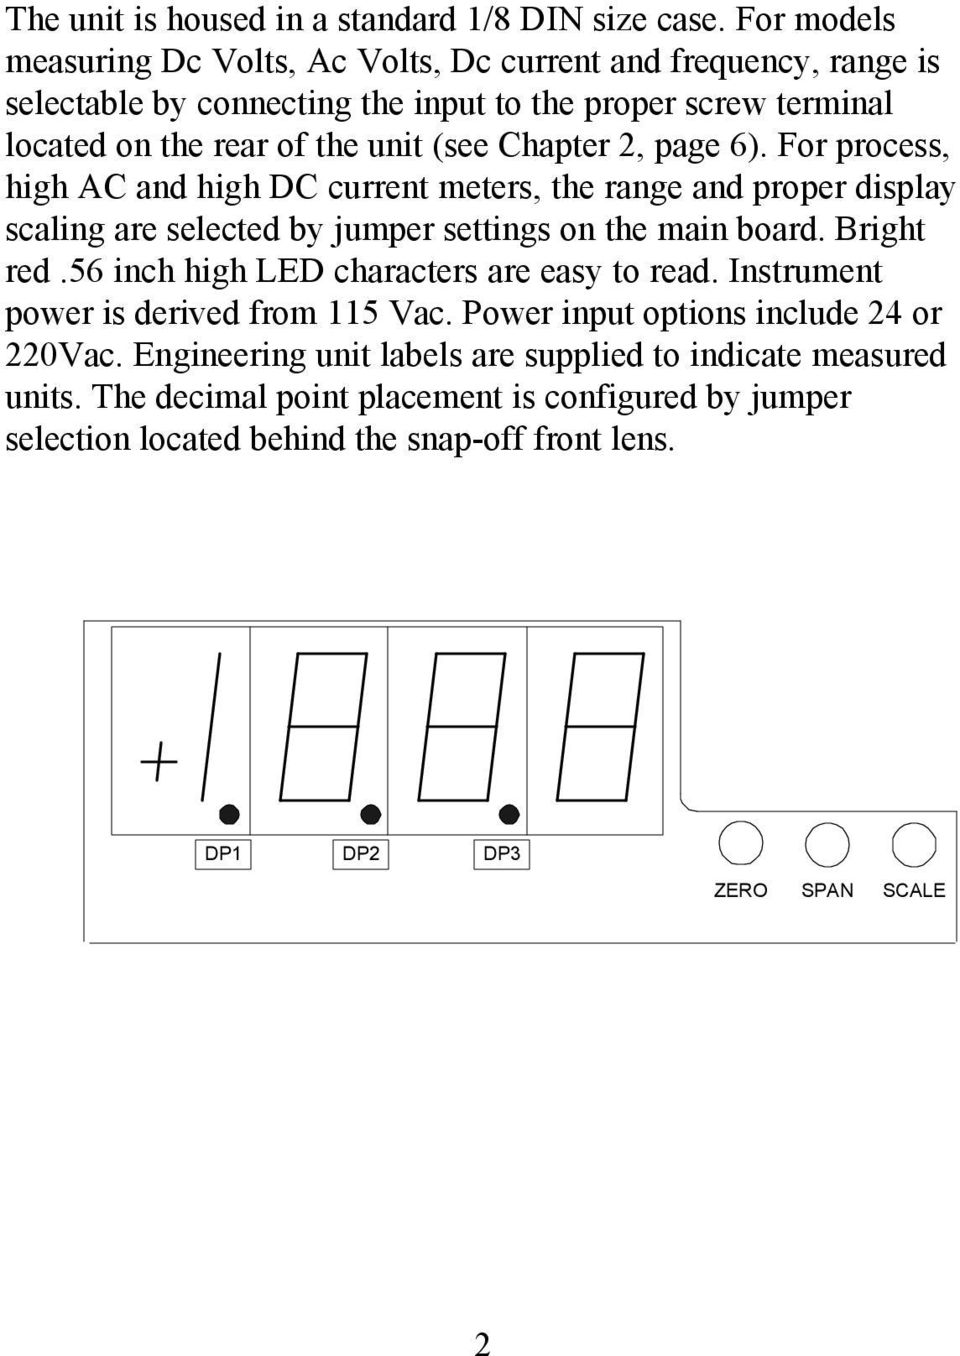 Chapter 2, page 6). For process, high AC and high DC current meters, the range and proper display scaling are selected by jumper settings on the main board. Bright red.